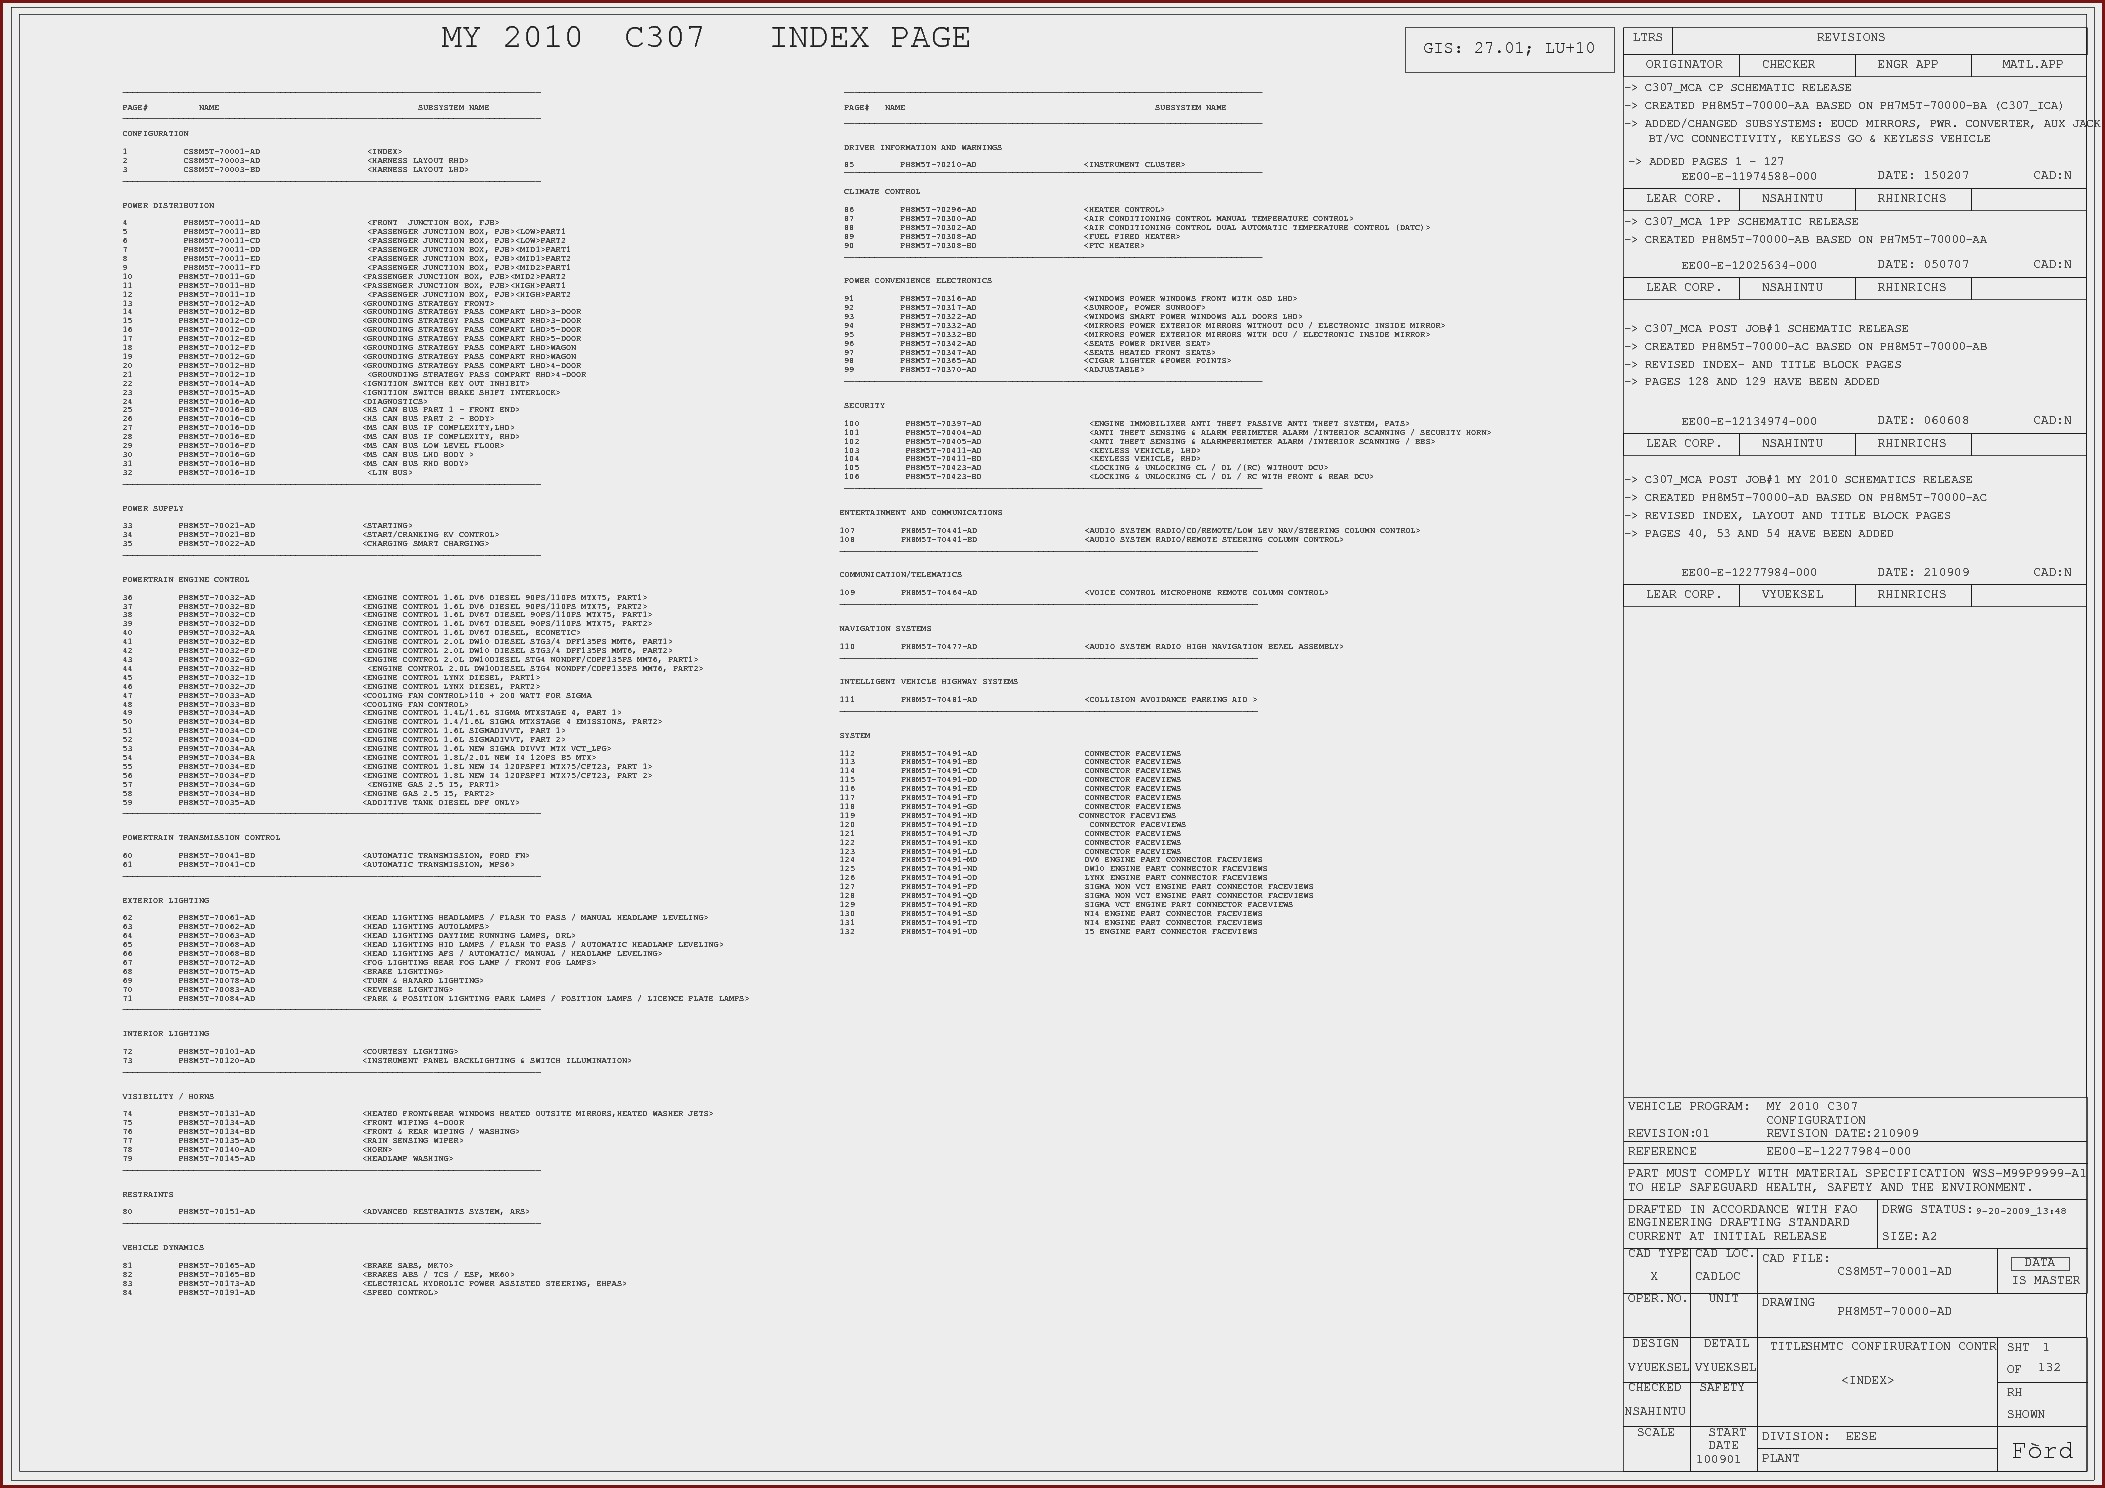 2002 ford Focus Wiring Diagram ford Ka Service and Repair Manual Pdf at Manuals Library Of 2002 ford Focus Wiring Diagram Ad33 Mini Cooper Ac Wiring Diagrams